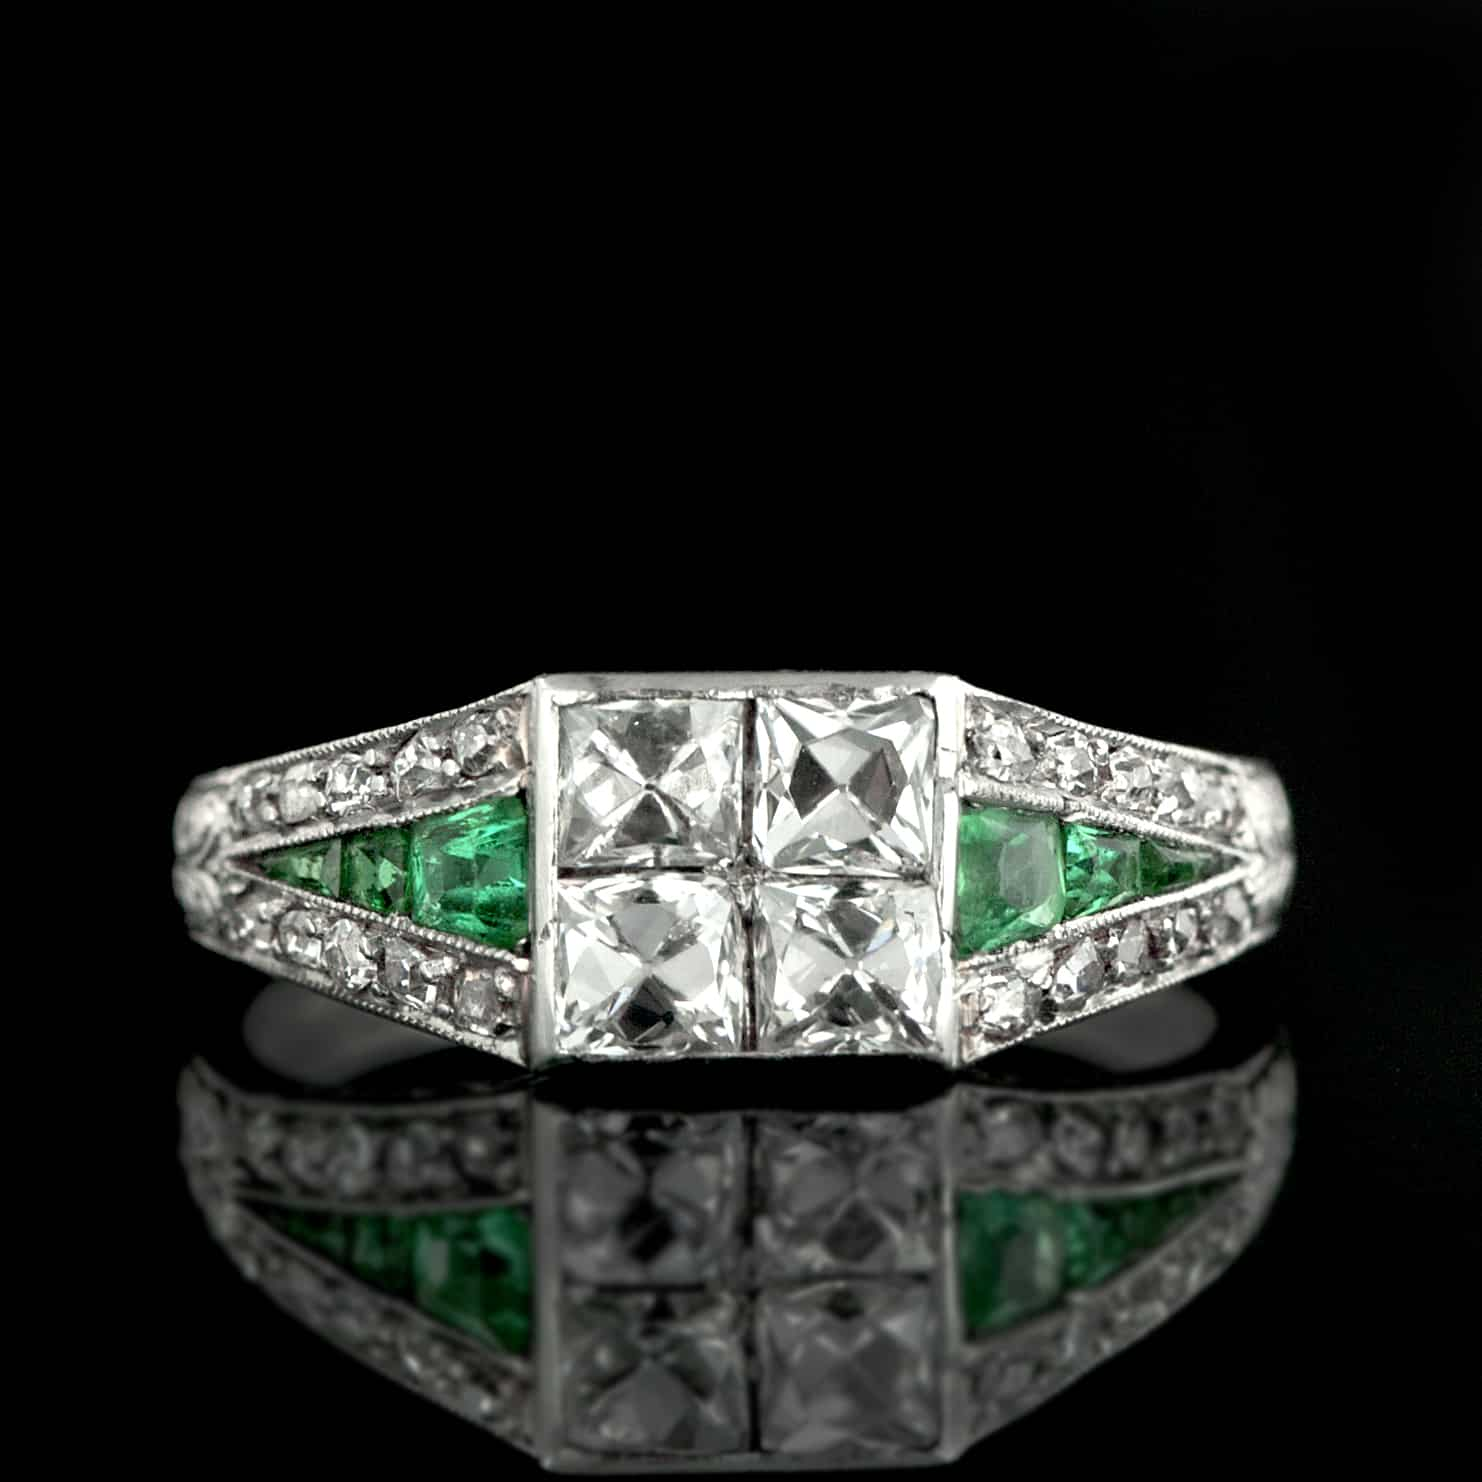 French cut diamonds in art deco ring